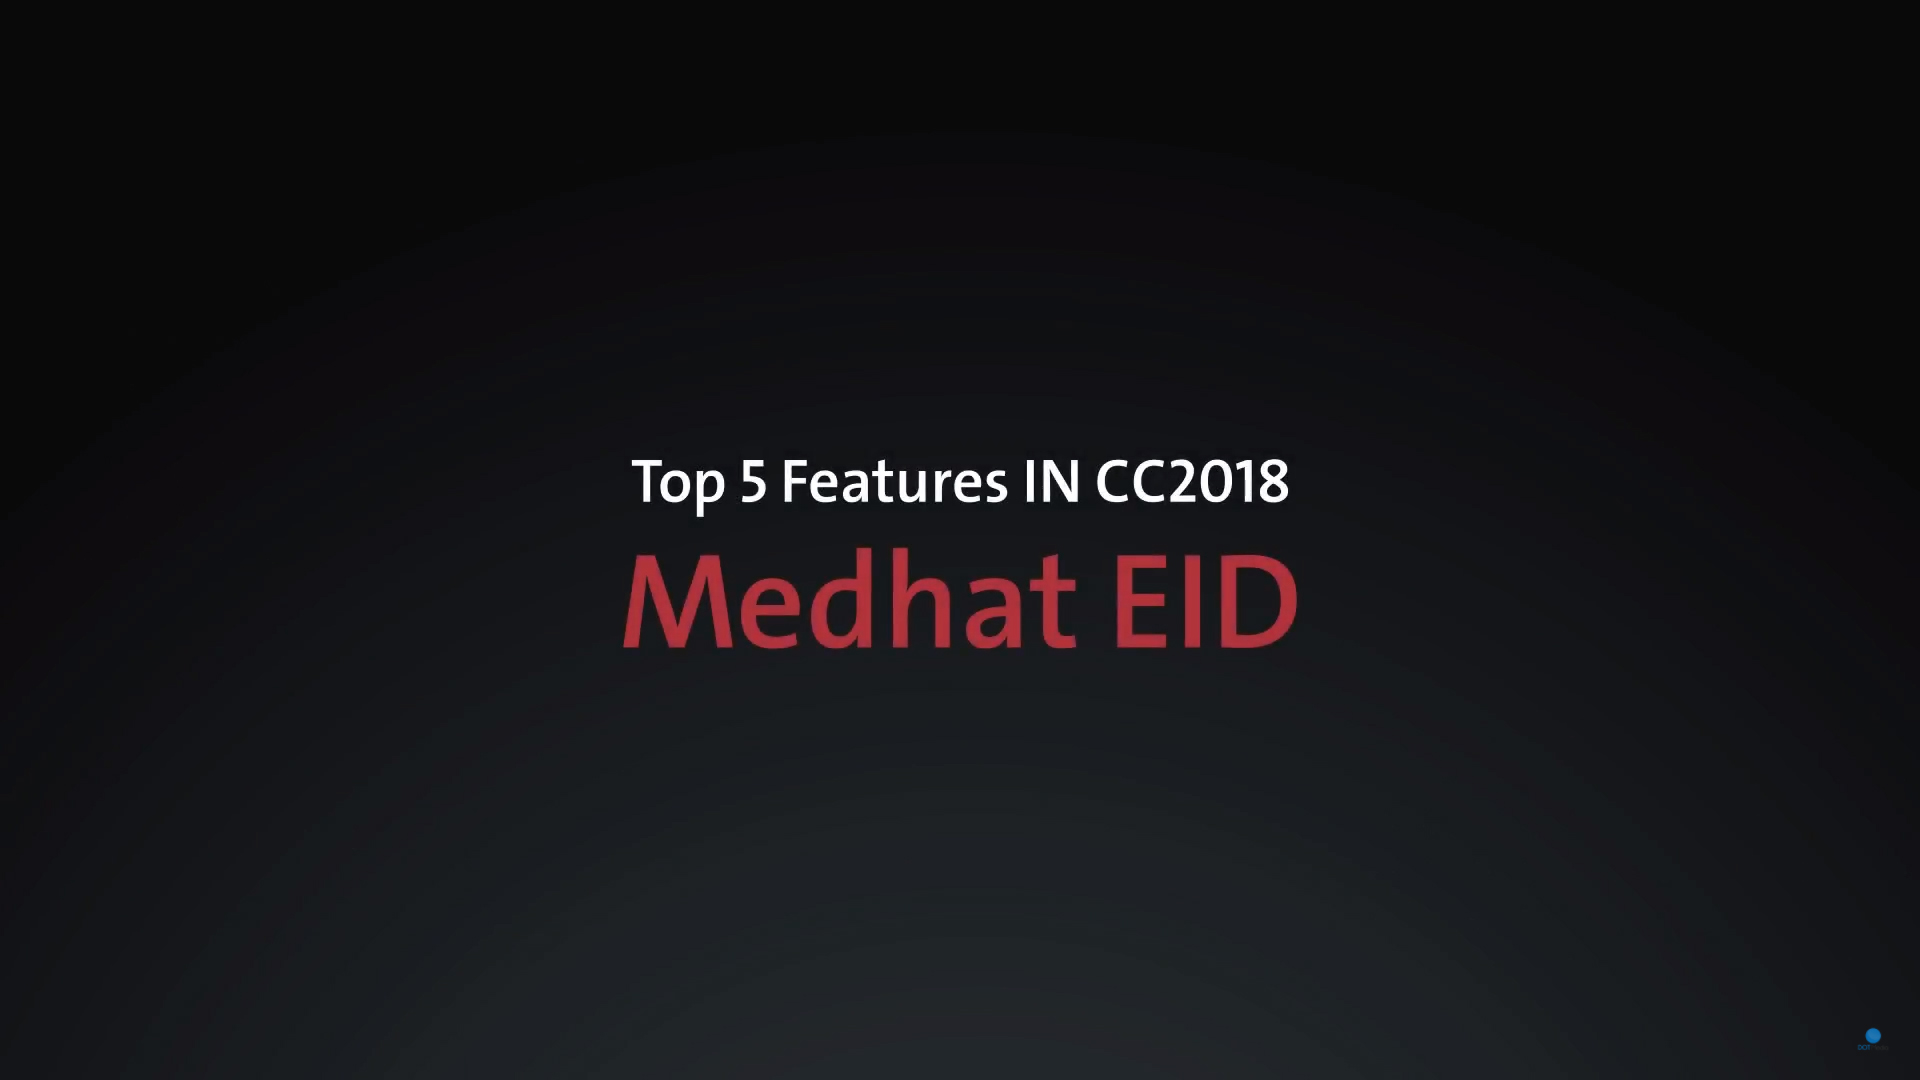 Feature CC2018 – Medhat Eid